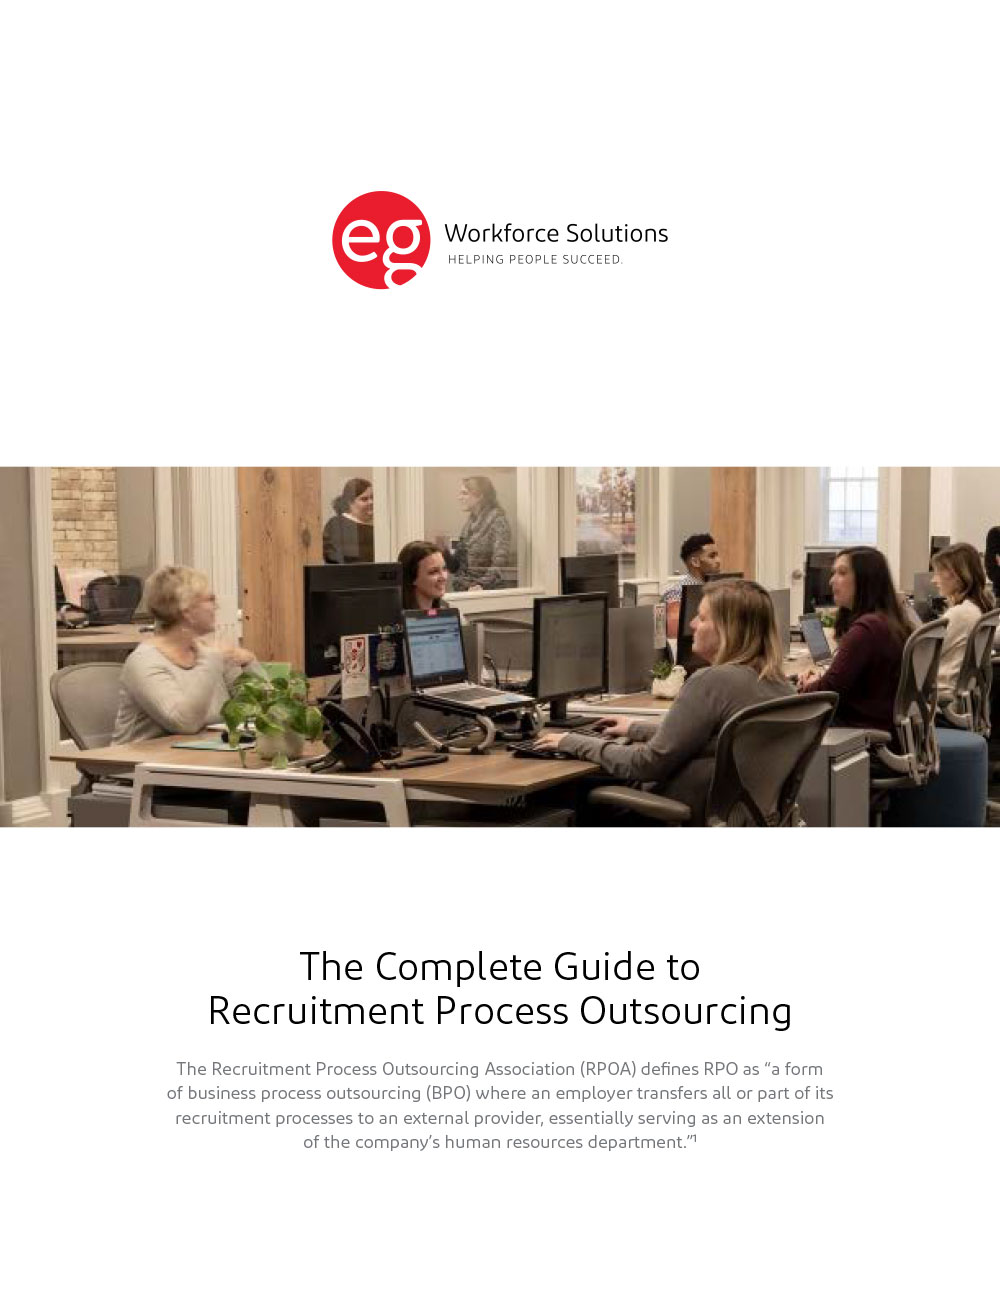 The Complete Guide to Recruitment Process Outsourcing (RPO)